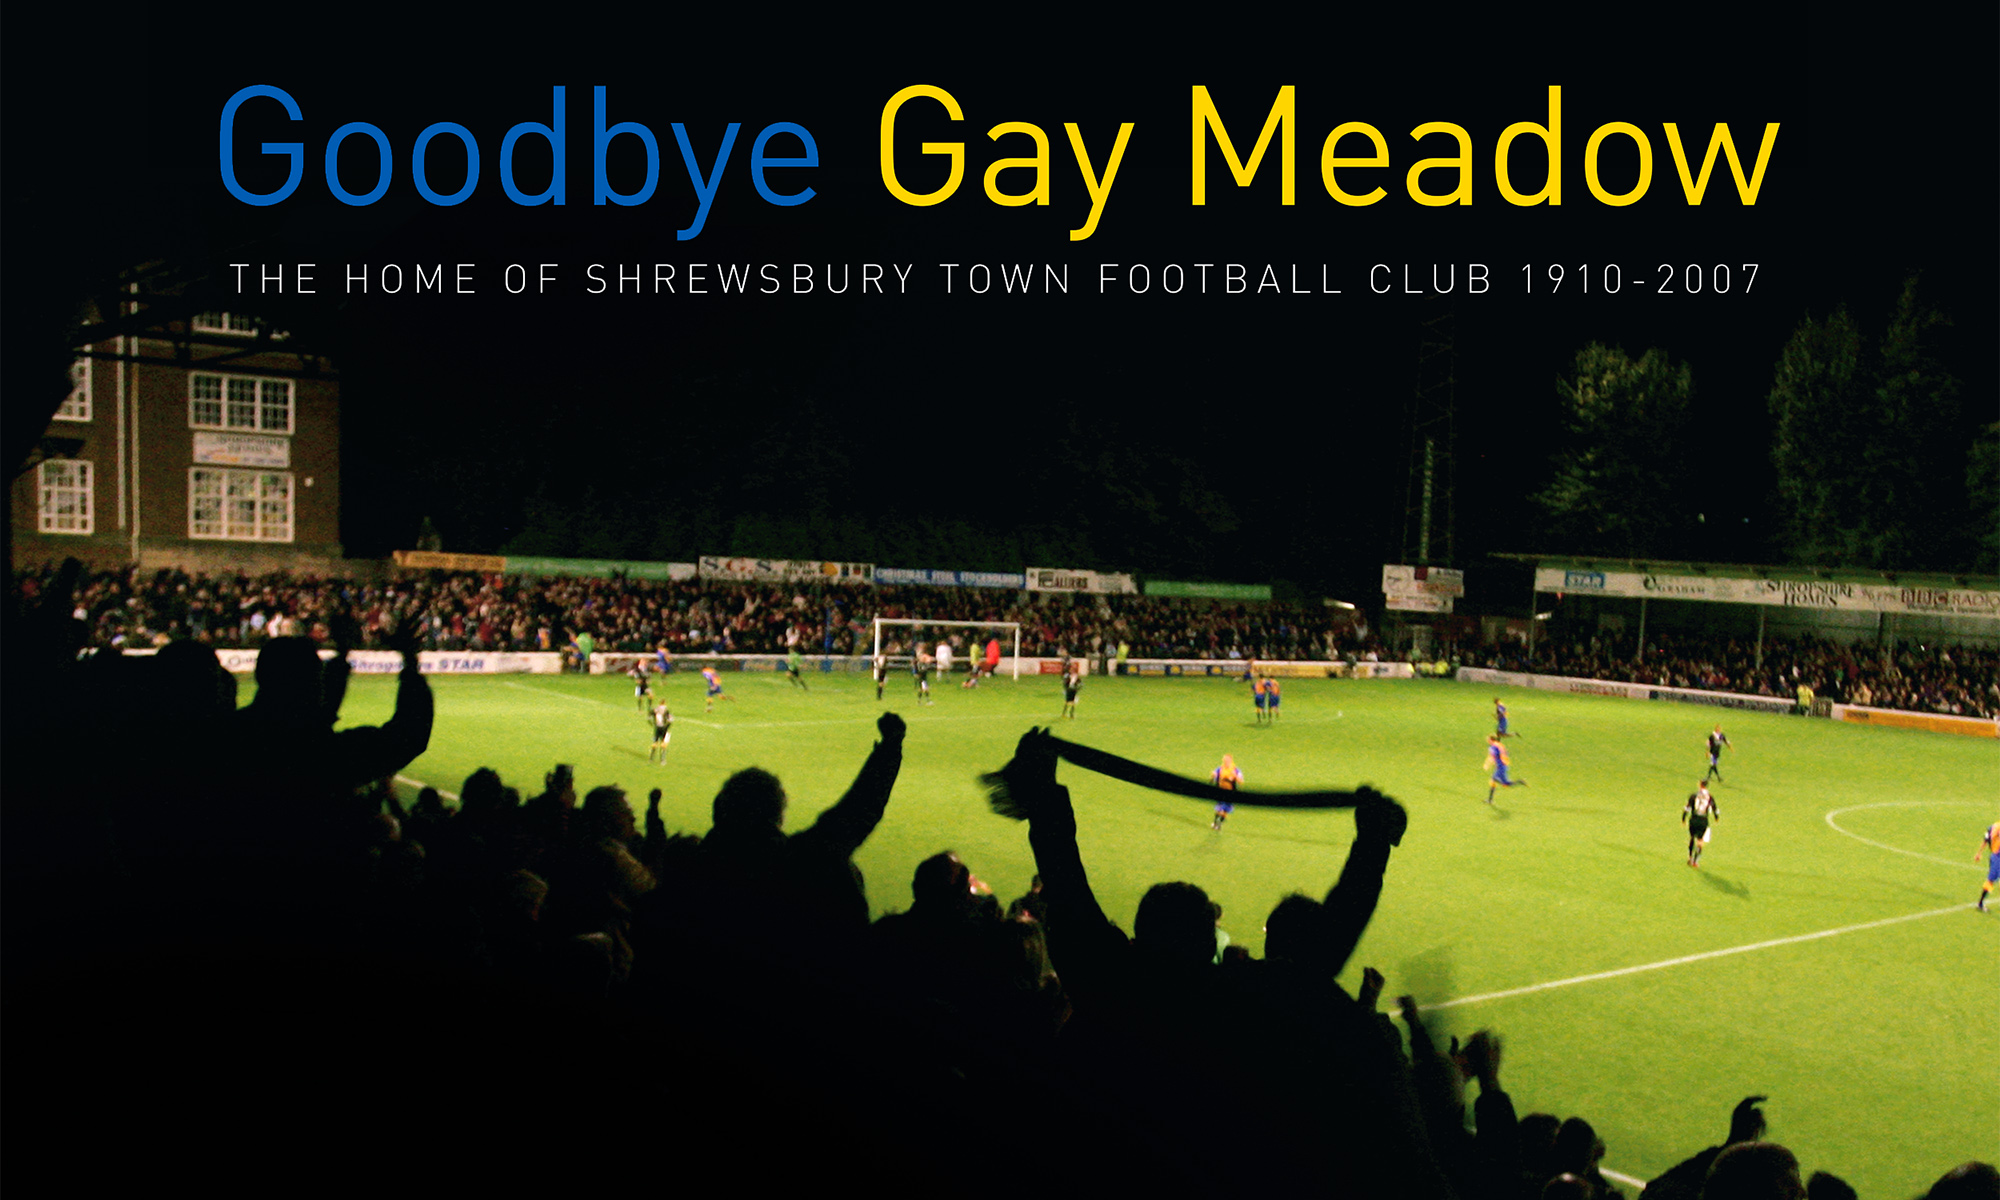 Goodbye Gay Meadow